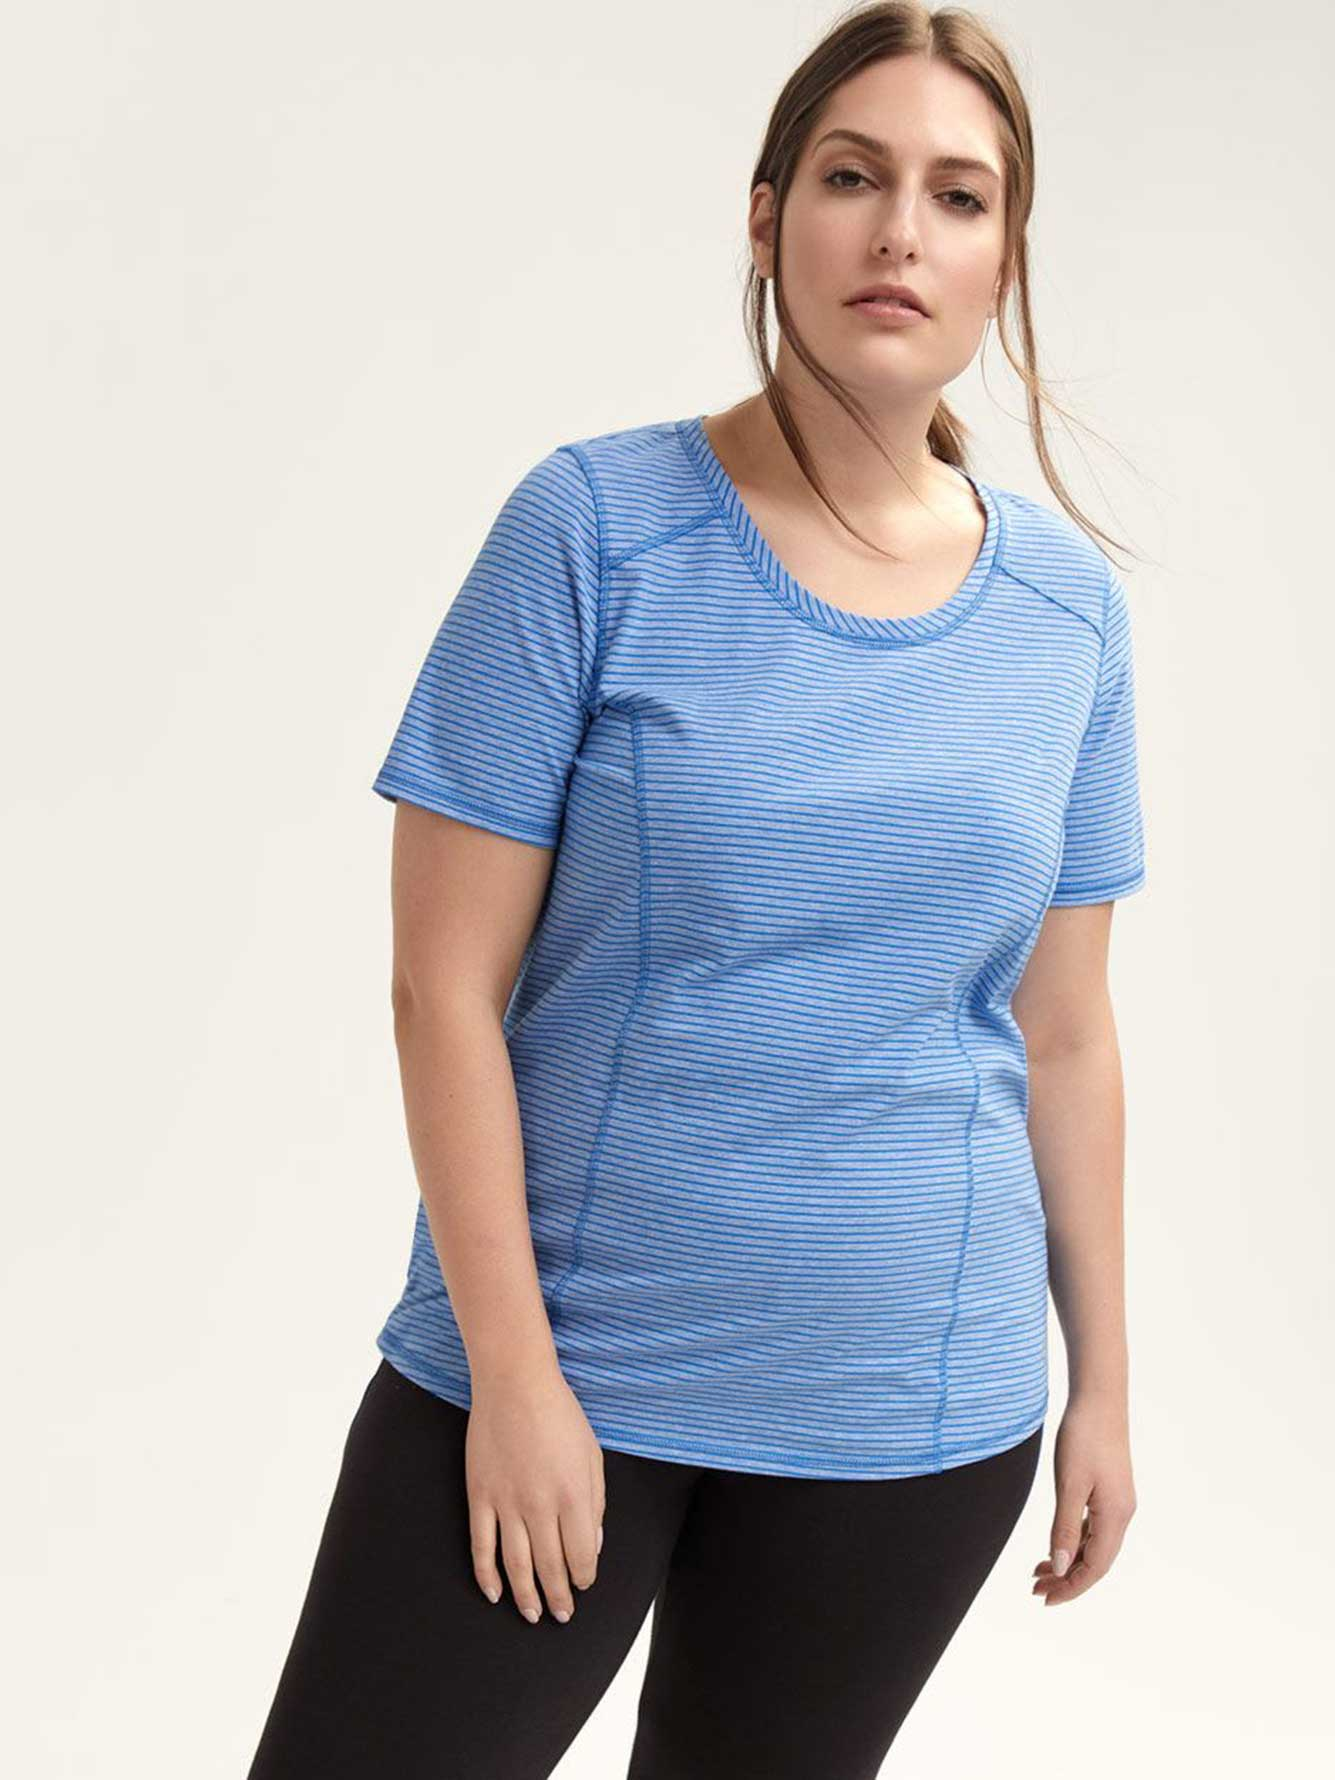 Striped Short Sleeve T-Shirt - ActiveZone